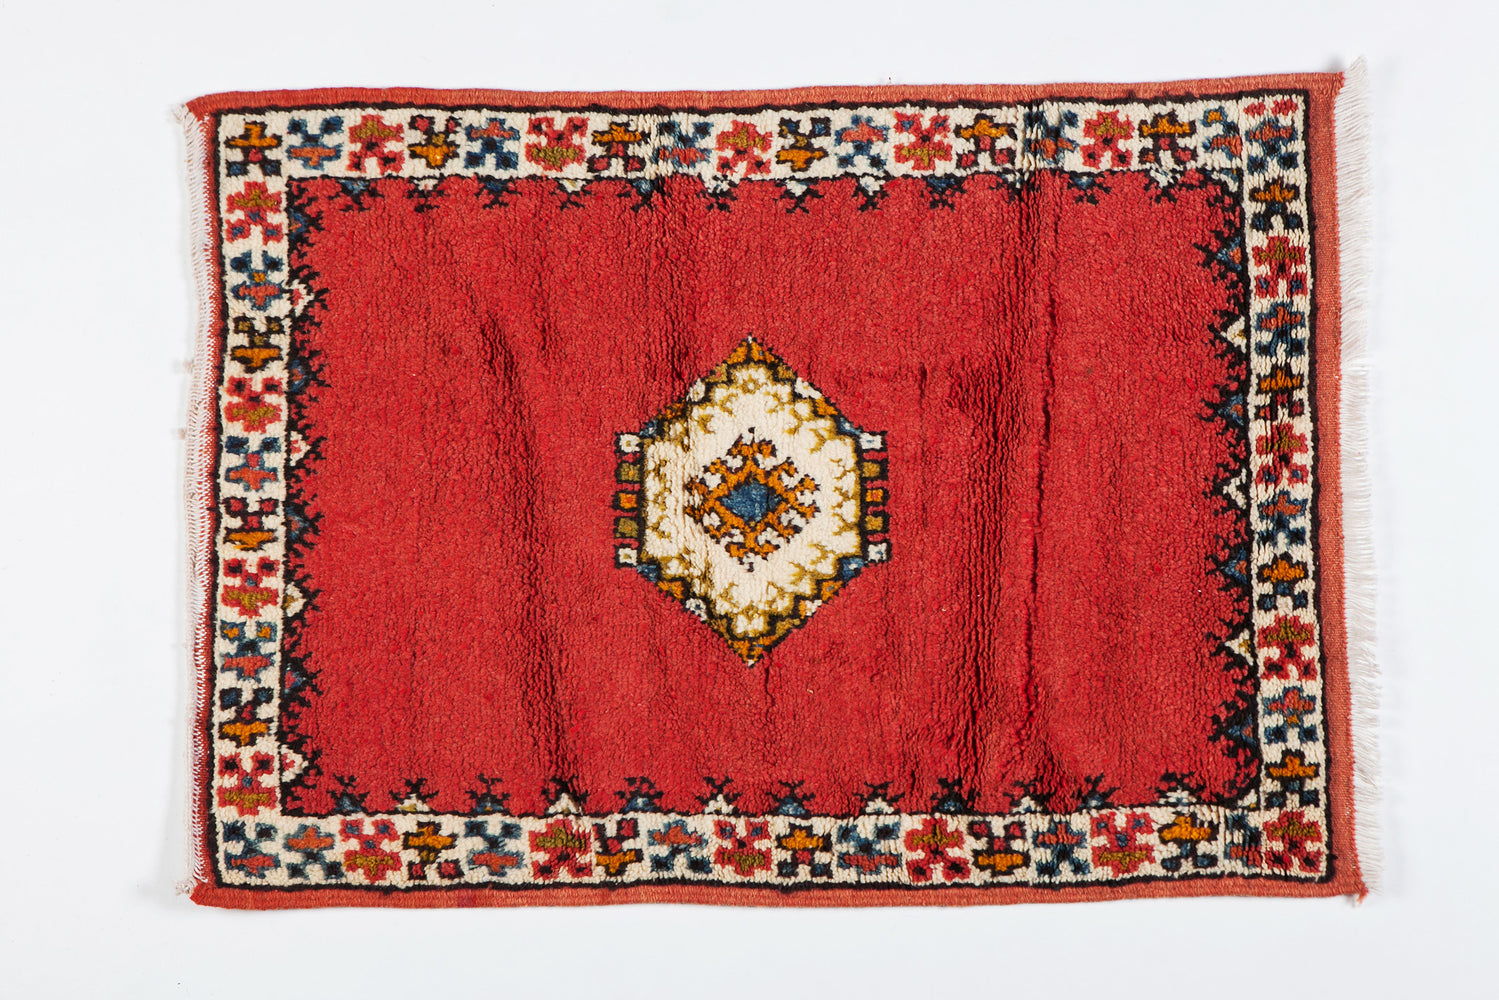 Berber Rug - Diamond on Deep Red Background Handwoven